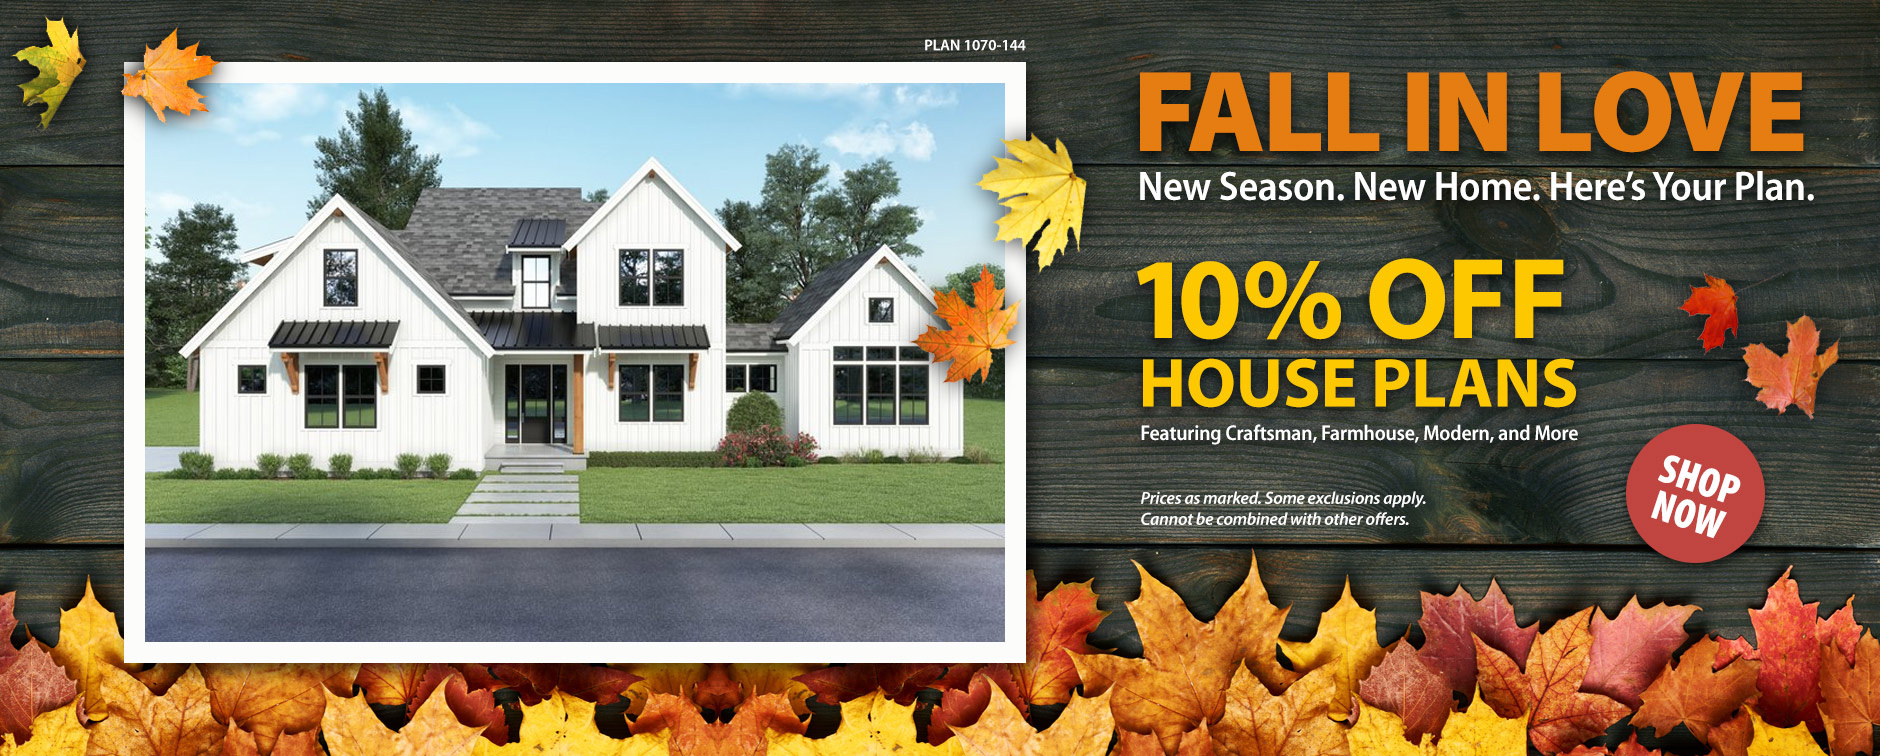 Home Plan Sale 10% Off House Plans